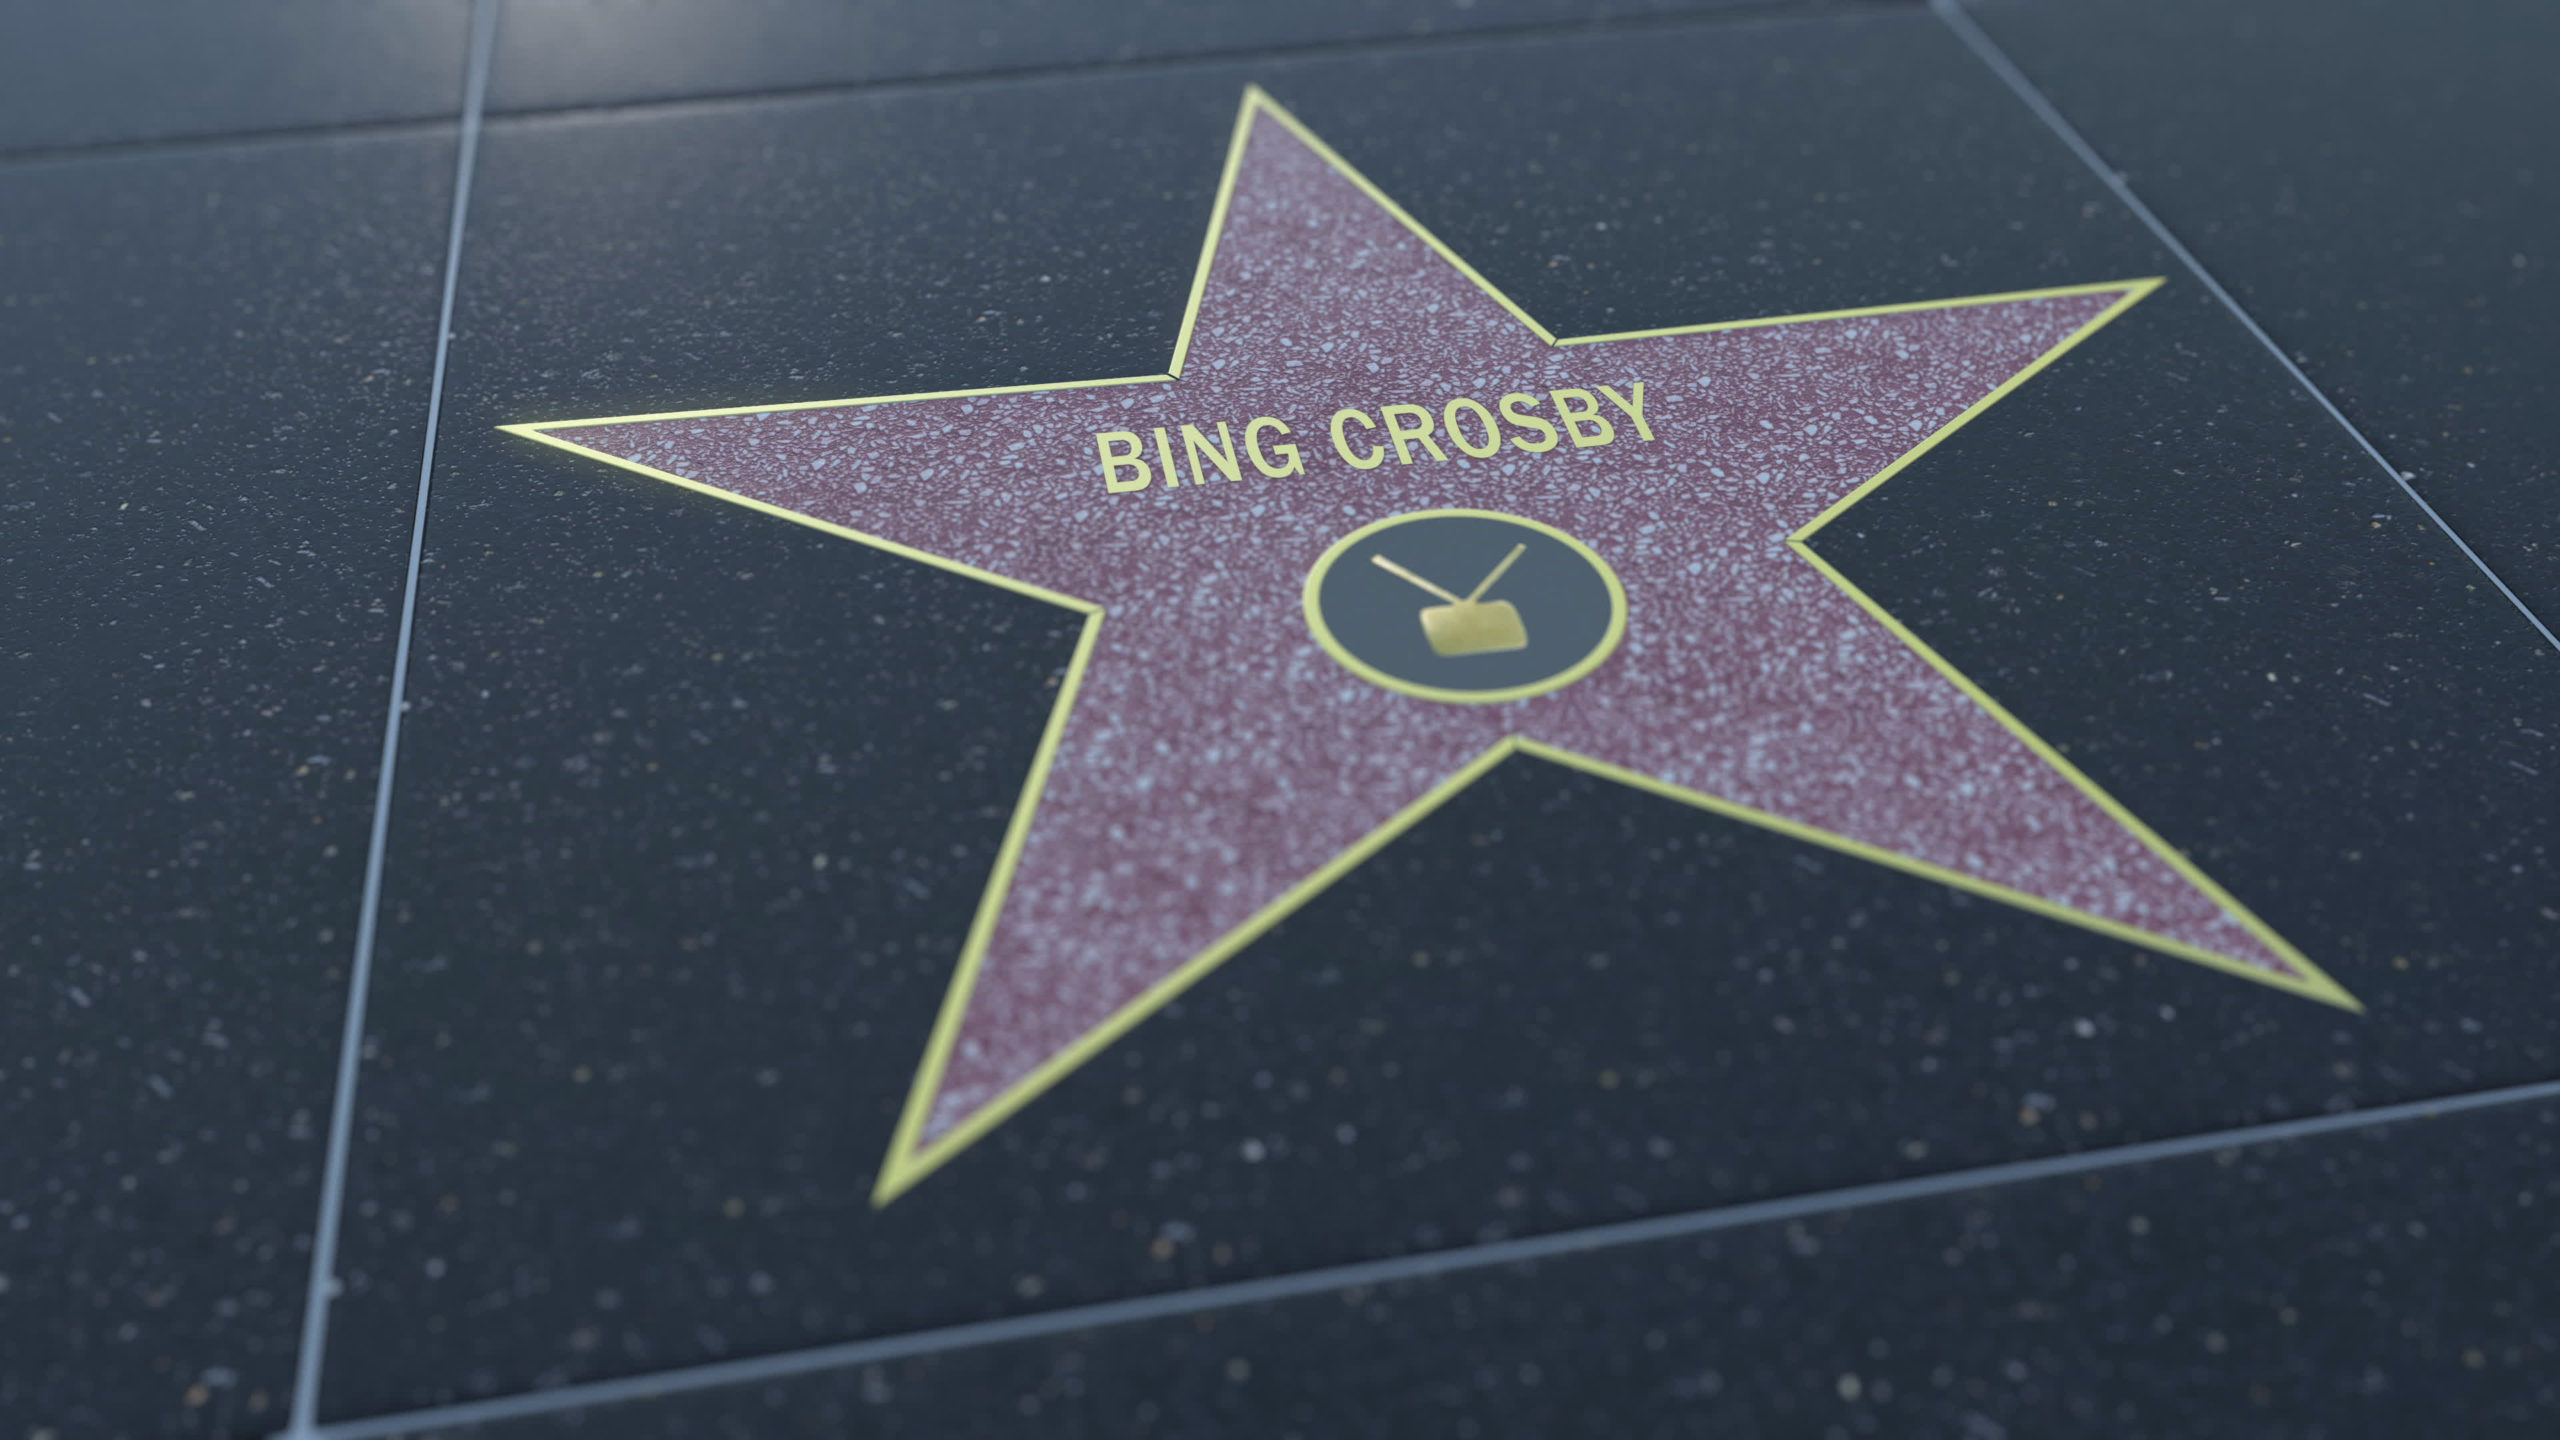 Bing Crosby facts